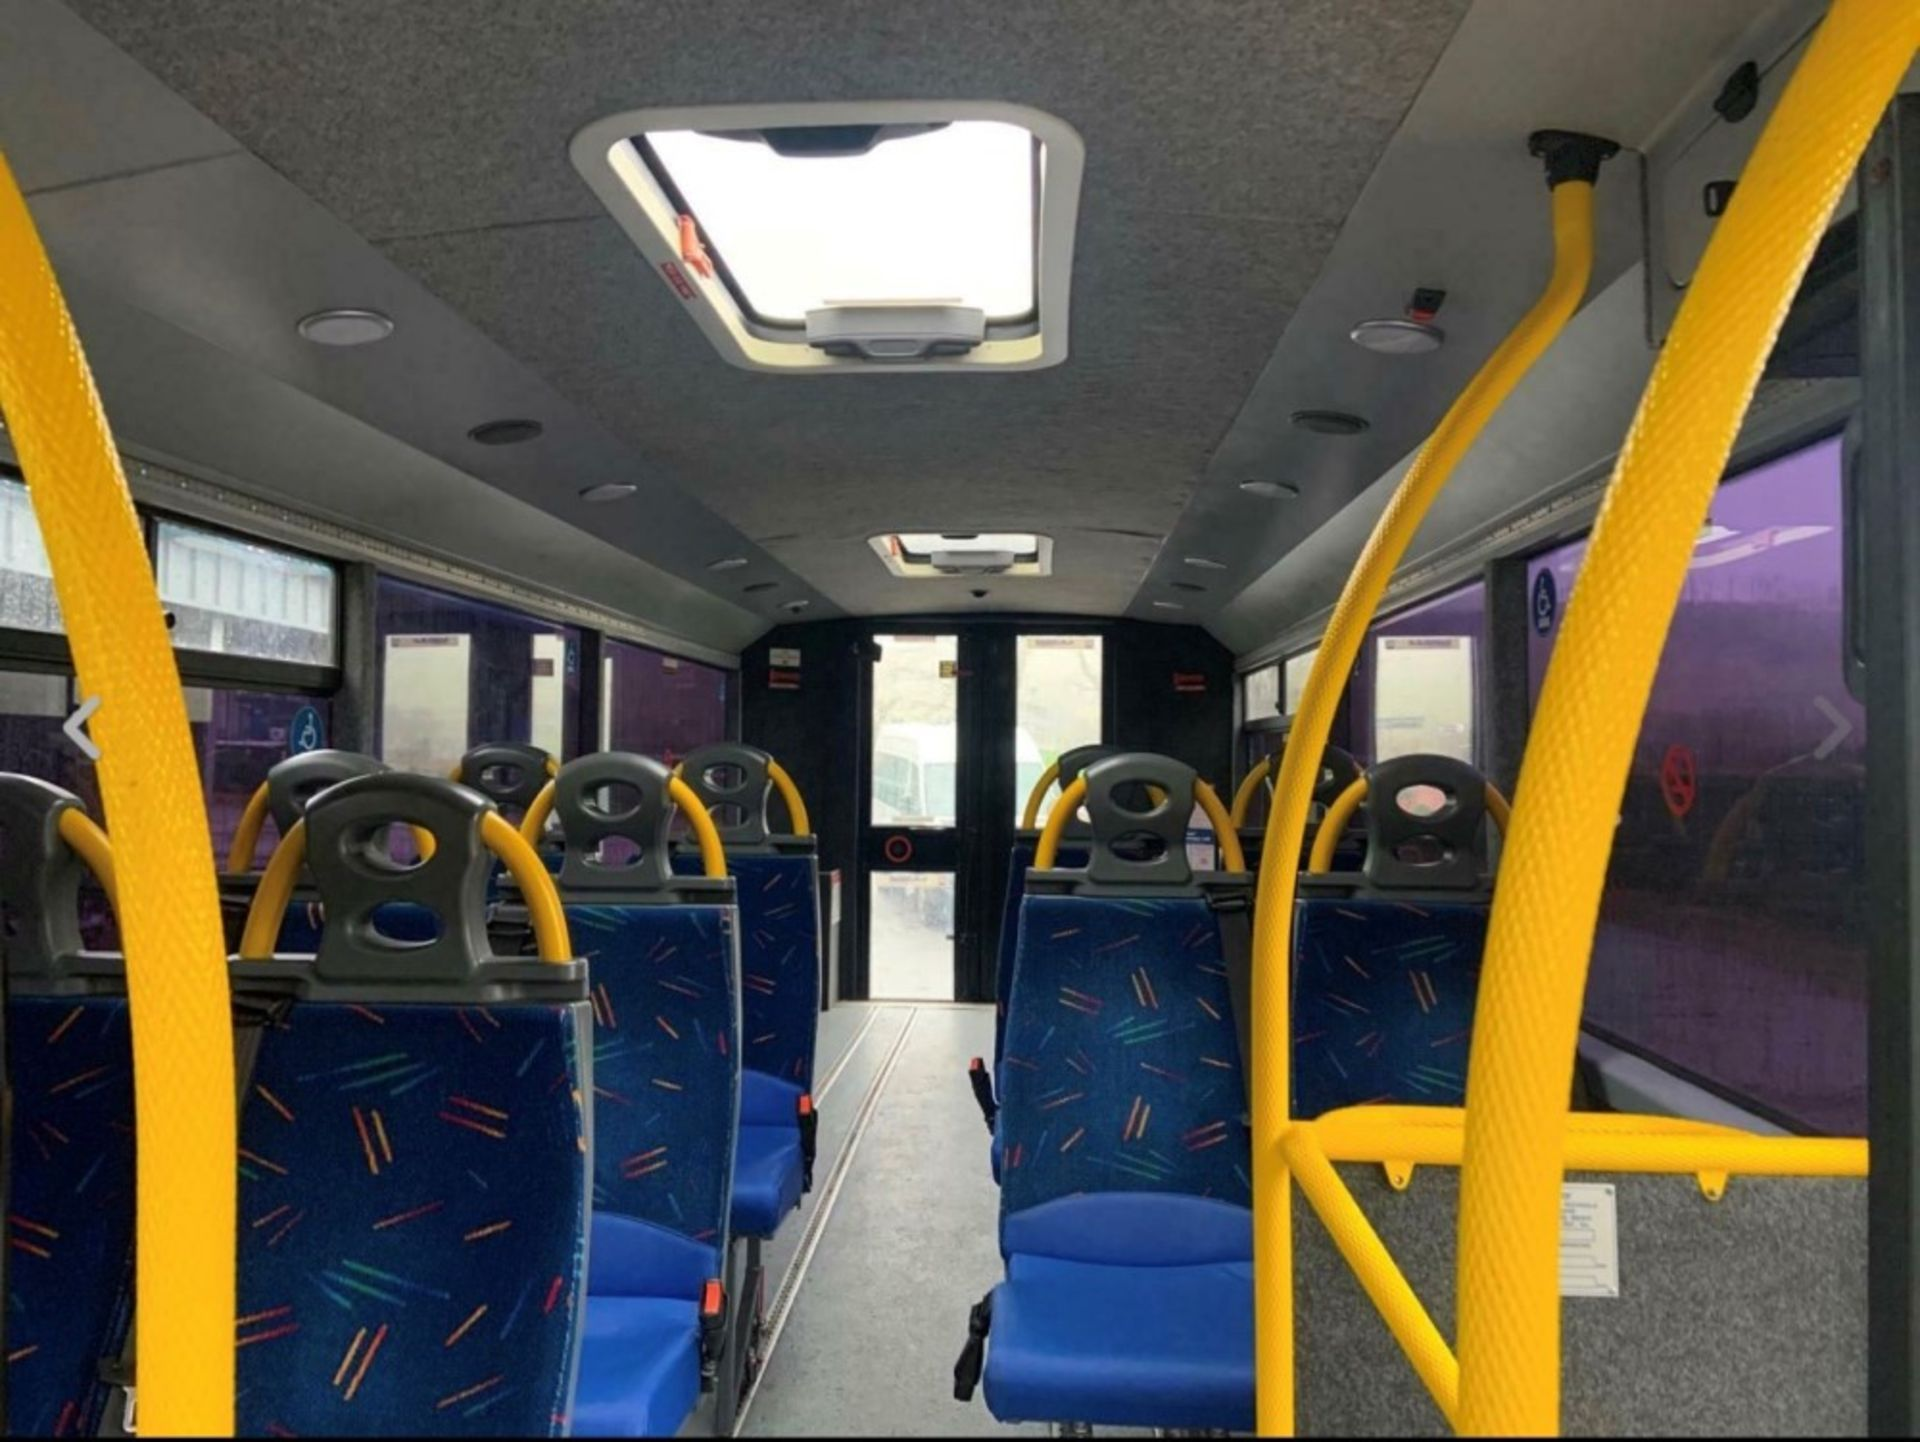 12 reg IRIS DAILY 65C17 MELLOR 11 SEAT BUS (LOCATION DUMFRIES) 1ST REG 05/12, 131454KM [+ VAT] - Image 5 of 6